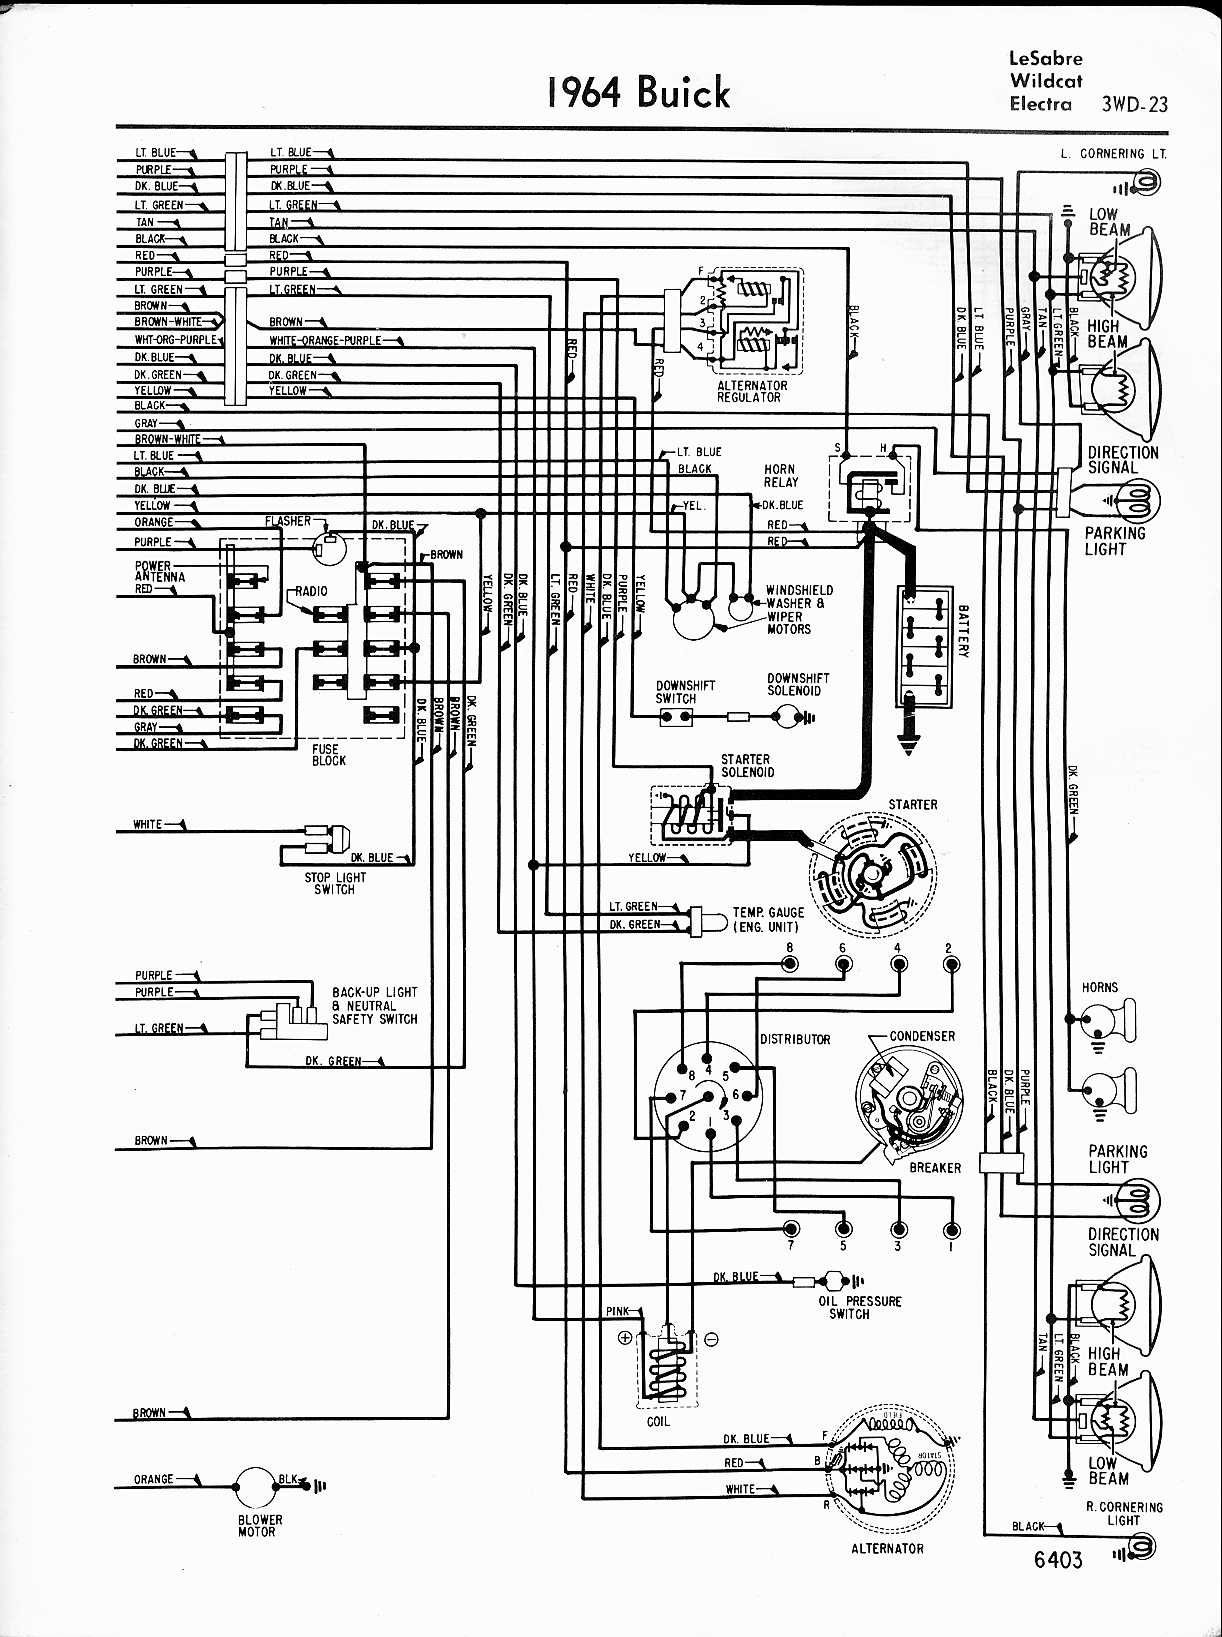 Excellent Alternator Wiring Diagram 1957 Online Wiring Diagram Wiring 101 Akebretraxxcnl